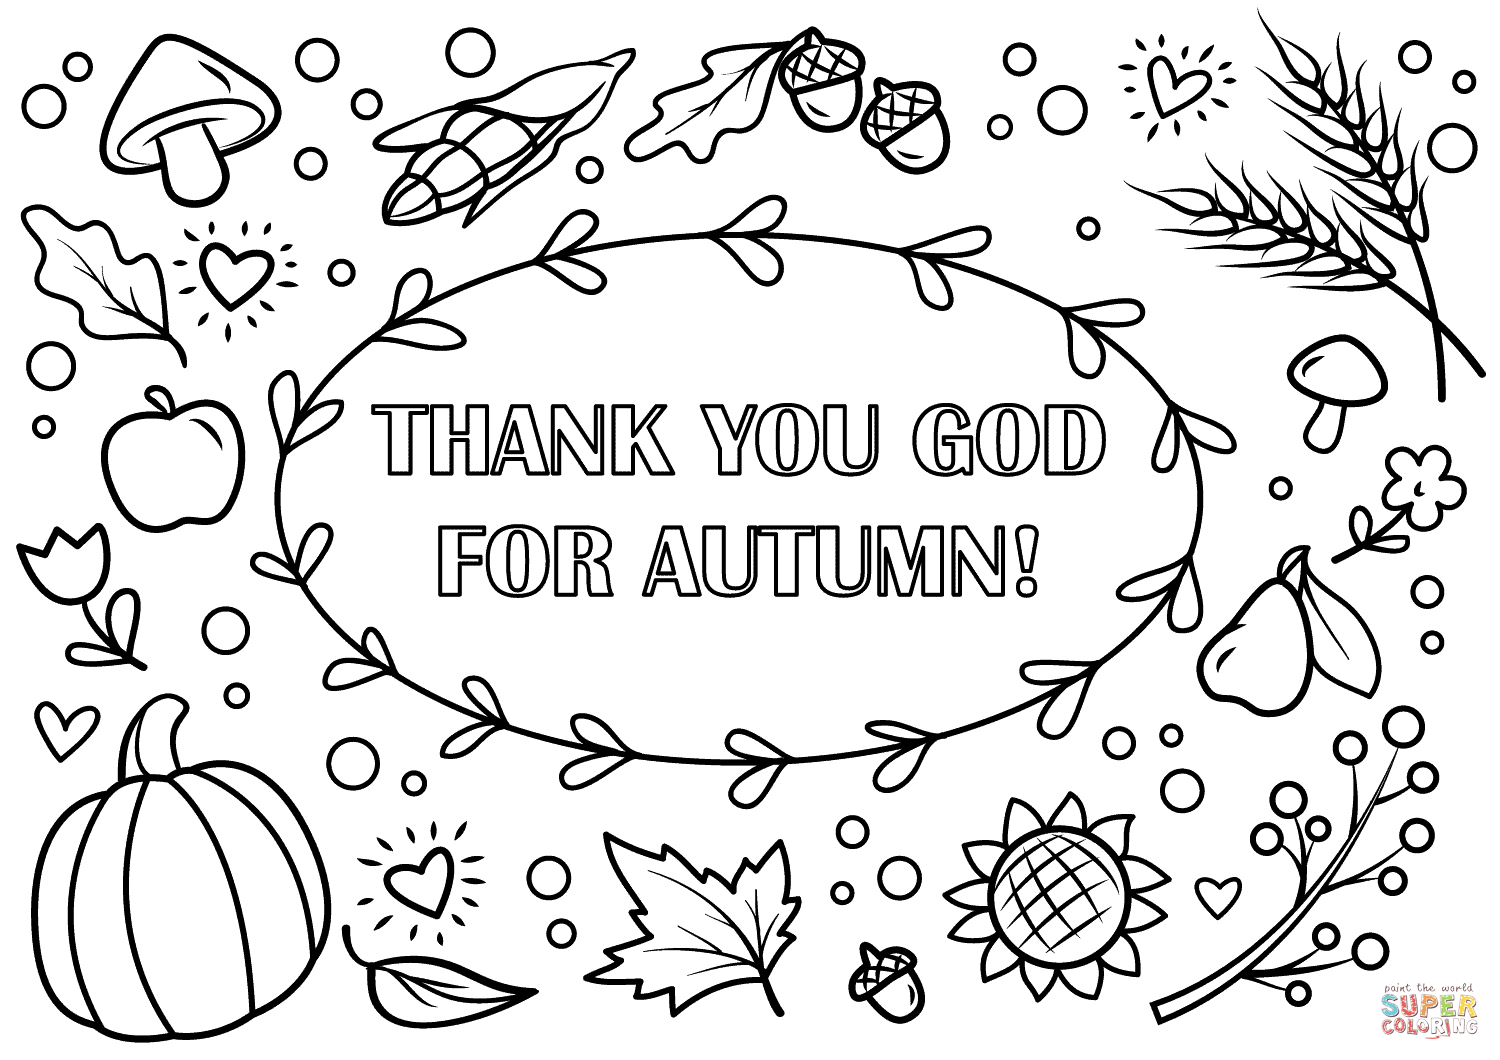 Thank You God For Autumn Coloring Page From Fall Category